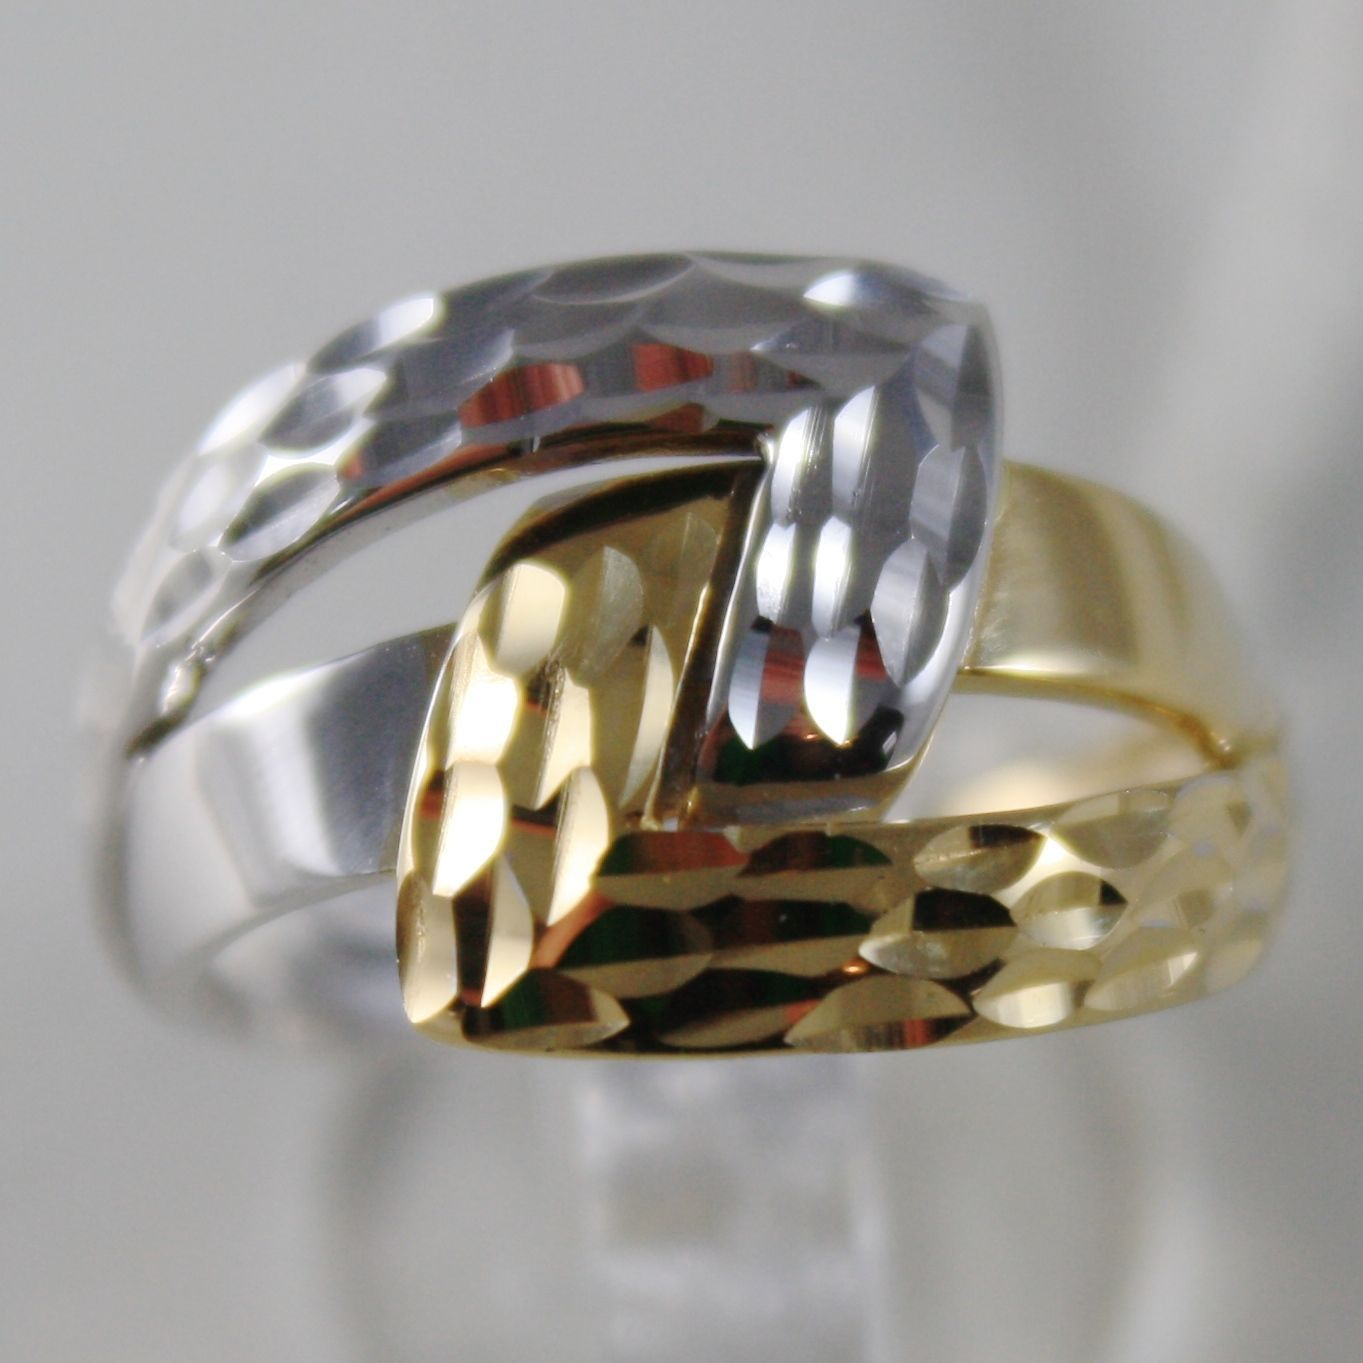 SOLID 18K WHITE & YELLOW GOLD BAND RING HUG INFINITY FINELY WORKED MADE IN ITALY